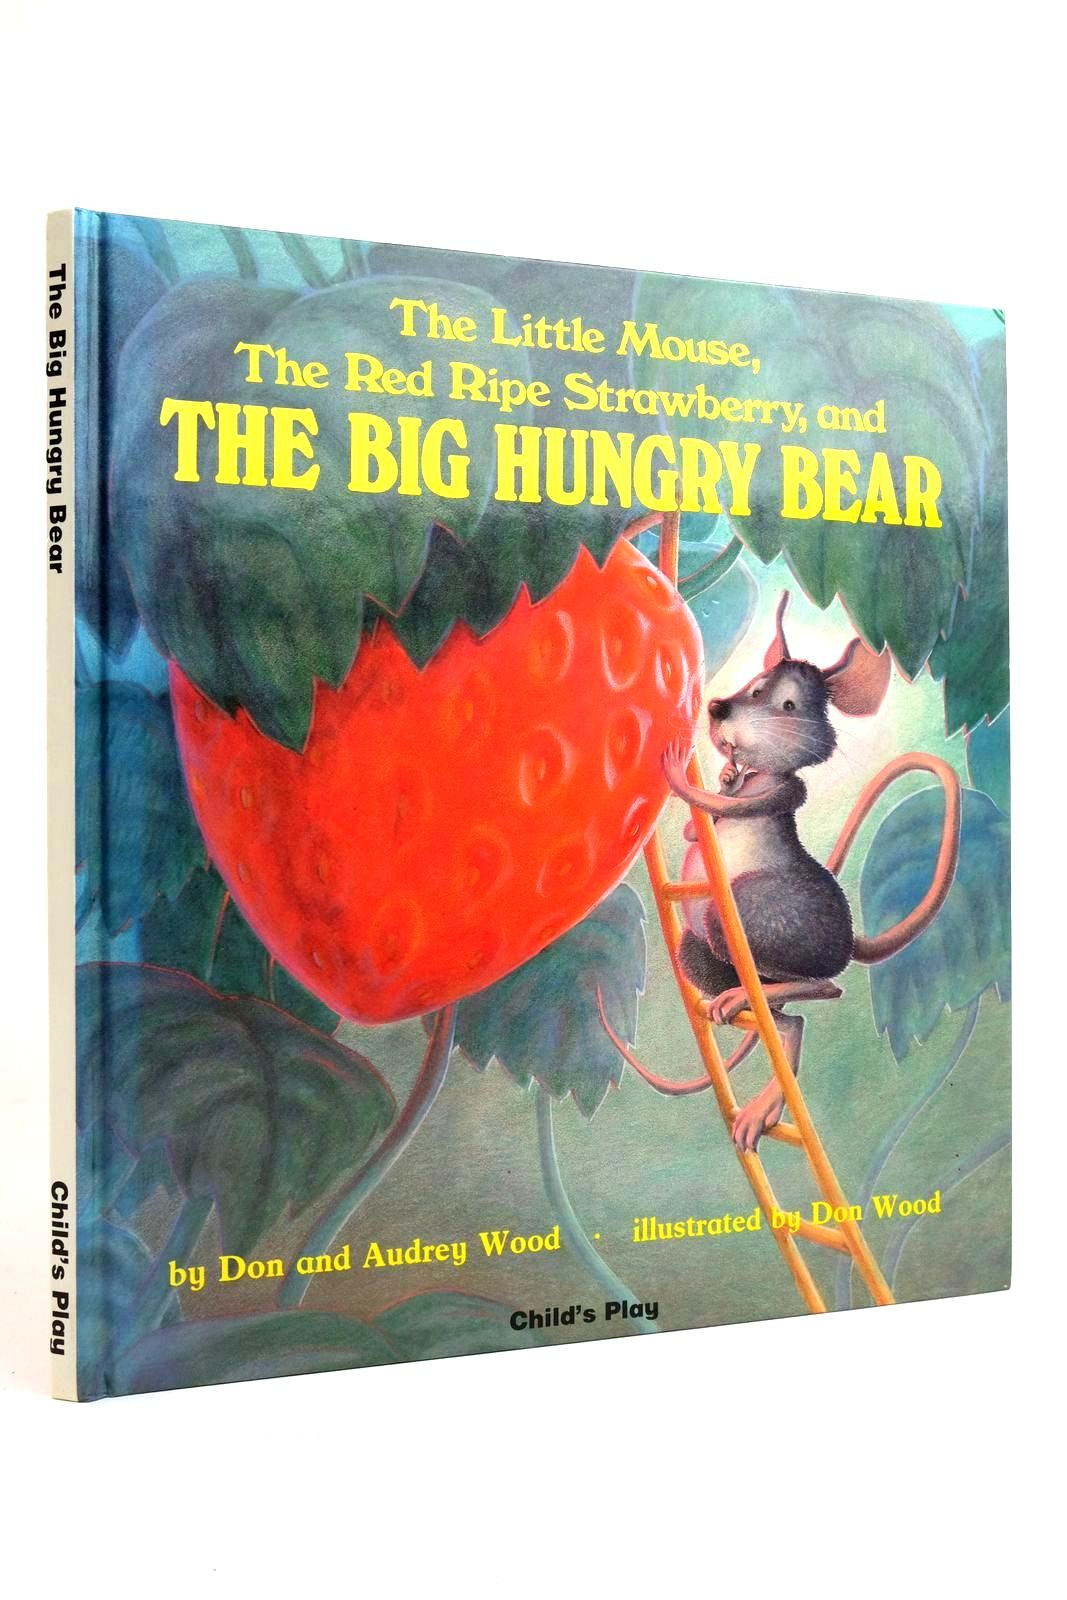 Photo of THE LITTLE MOUSE, THE RED RIPE STRAWBERRY, AND THE BIG HUNGRY BEAR- Stock Number: 2135575